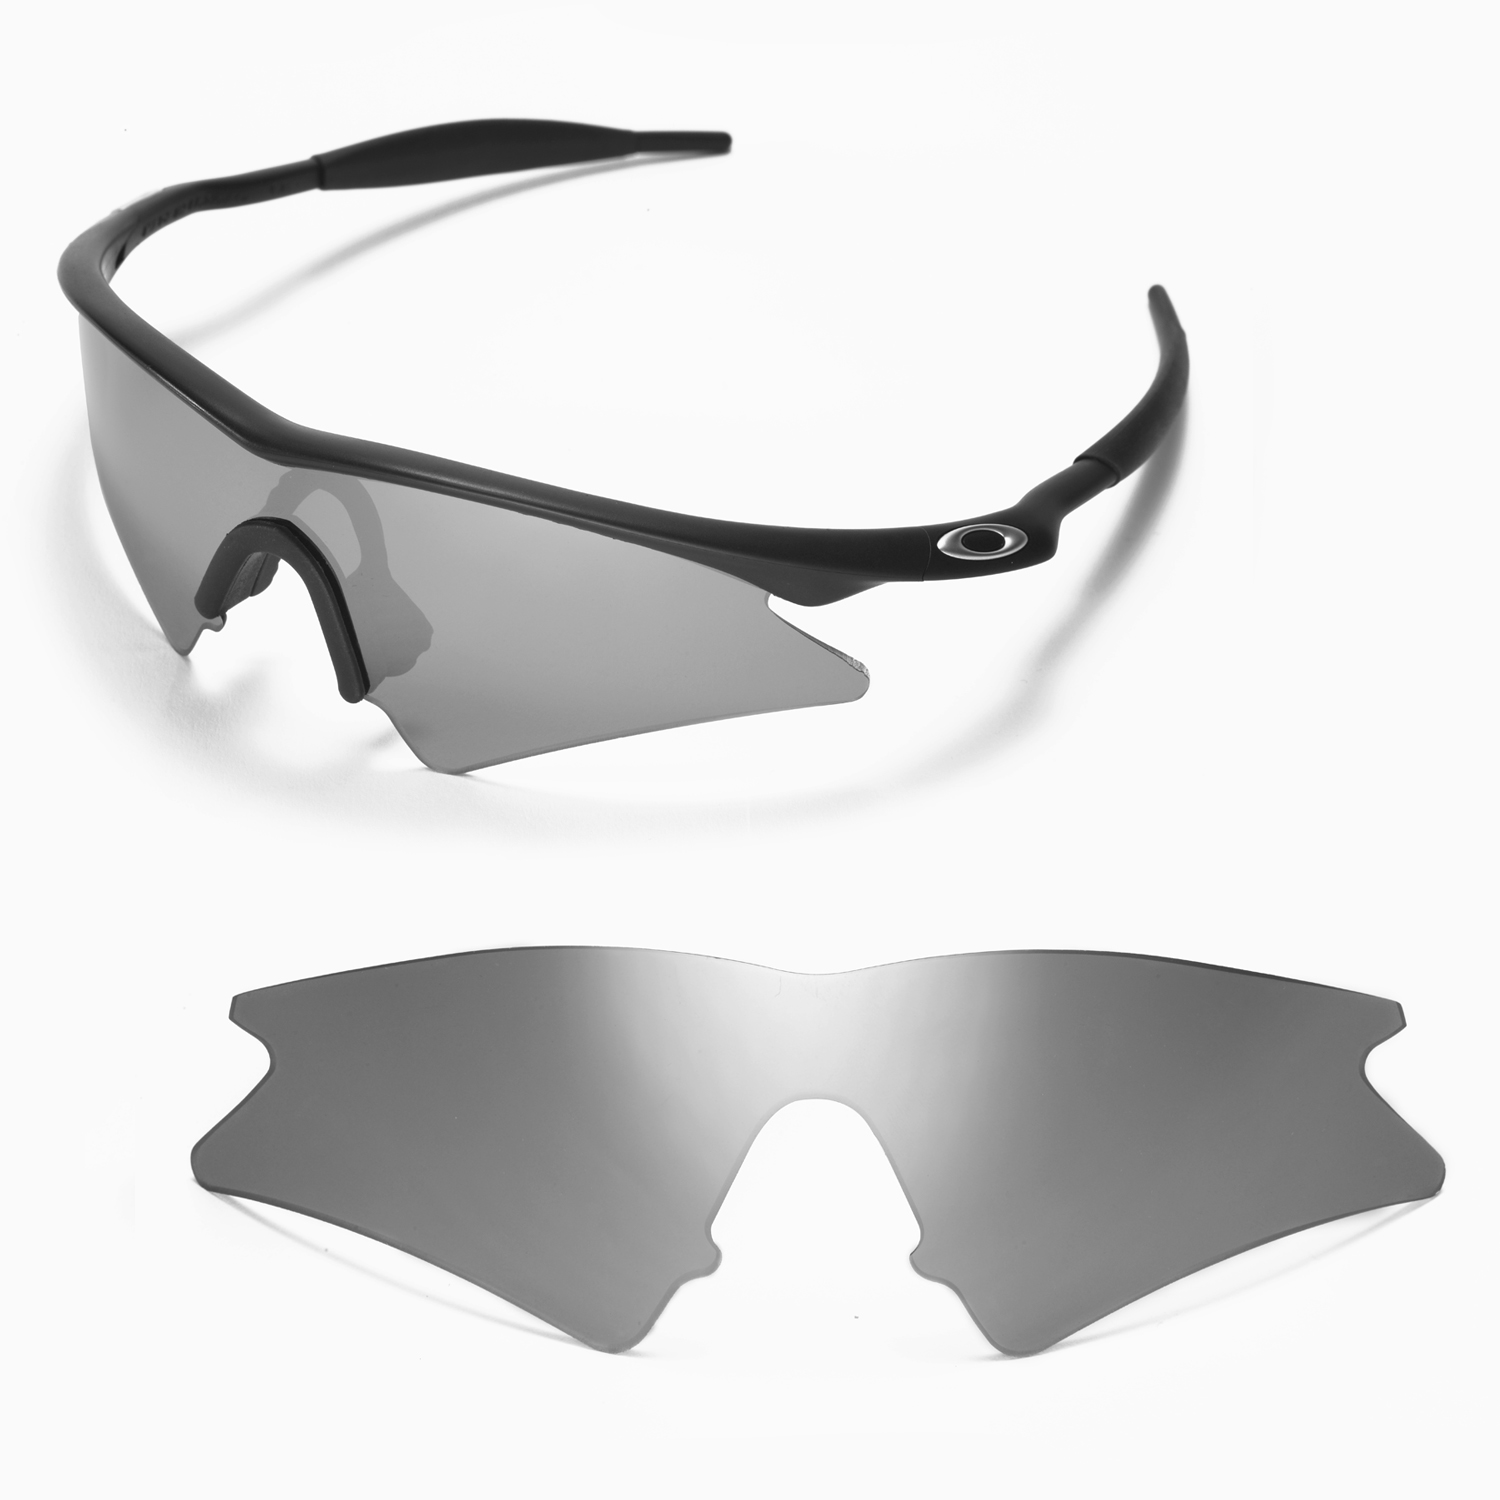 da5d74b0c25 Details about New Walleva Titanium Replacement Lenses For Oakley M Frame  Sweep Sunglasses